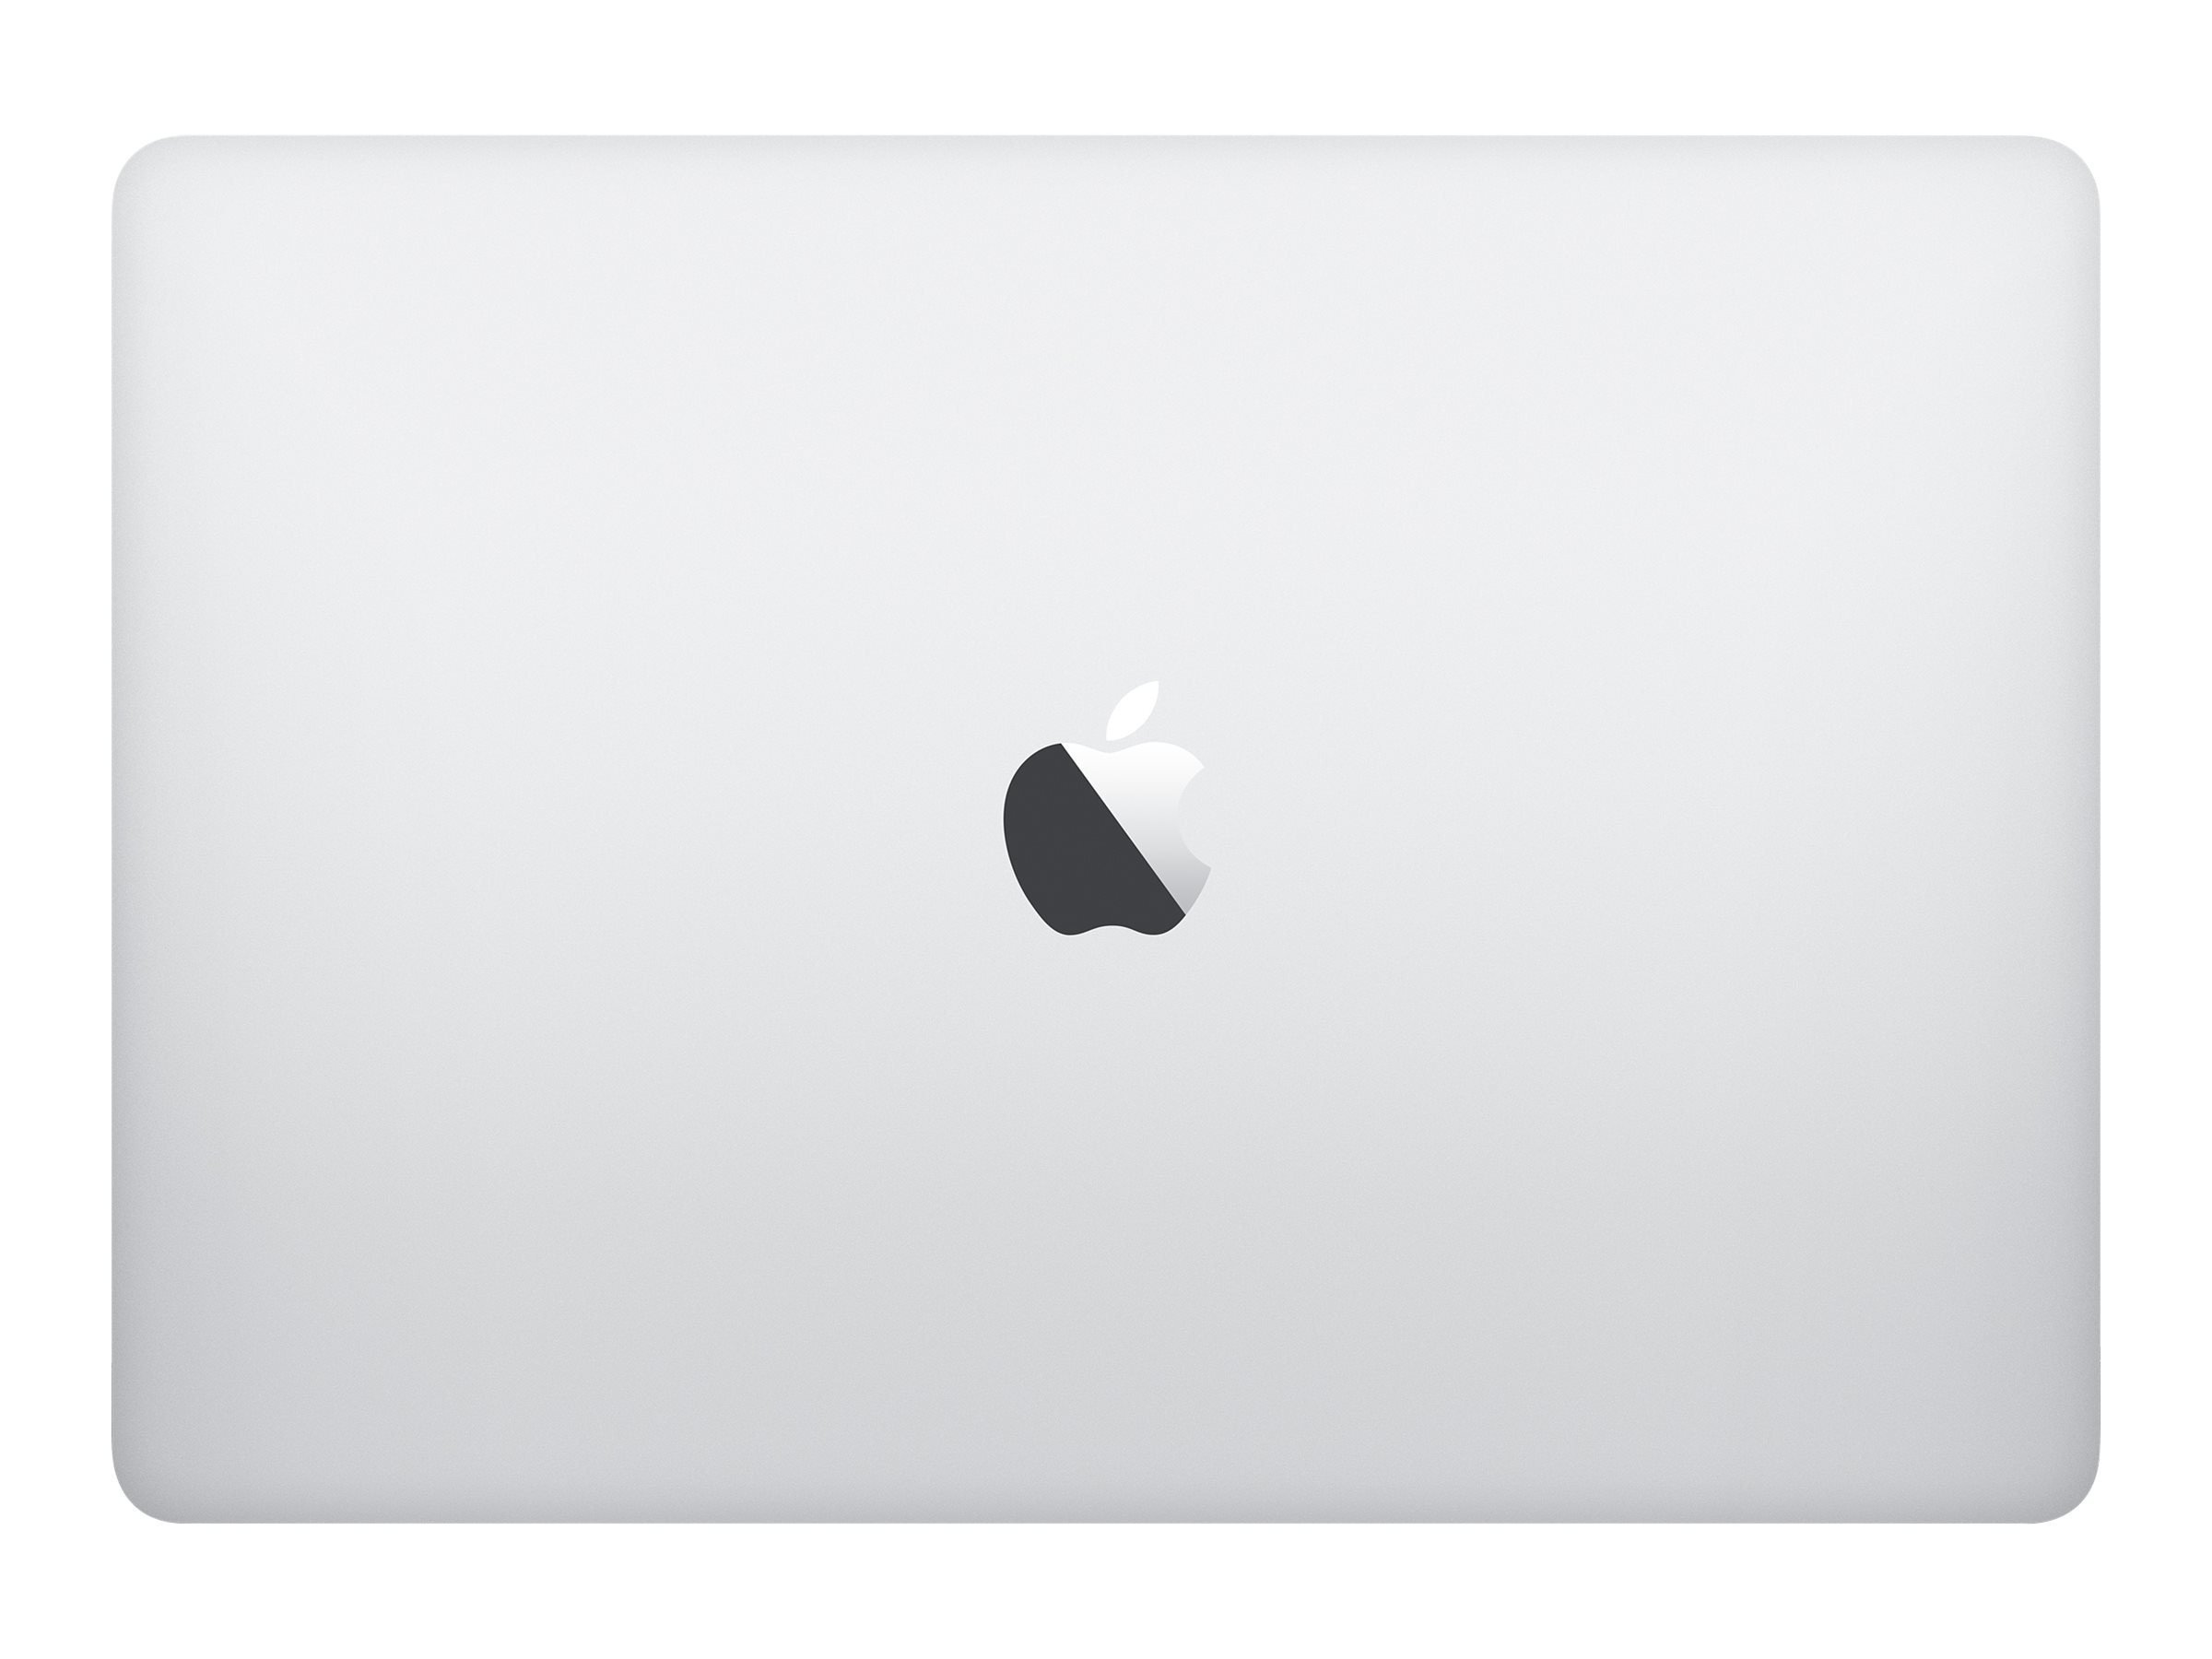 Apple MLW72LL/A Image 3